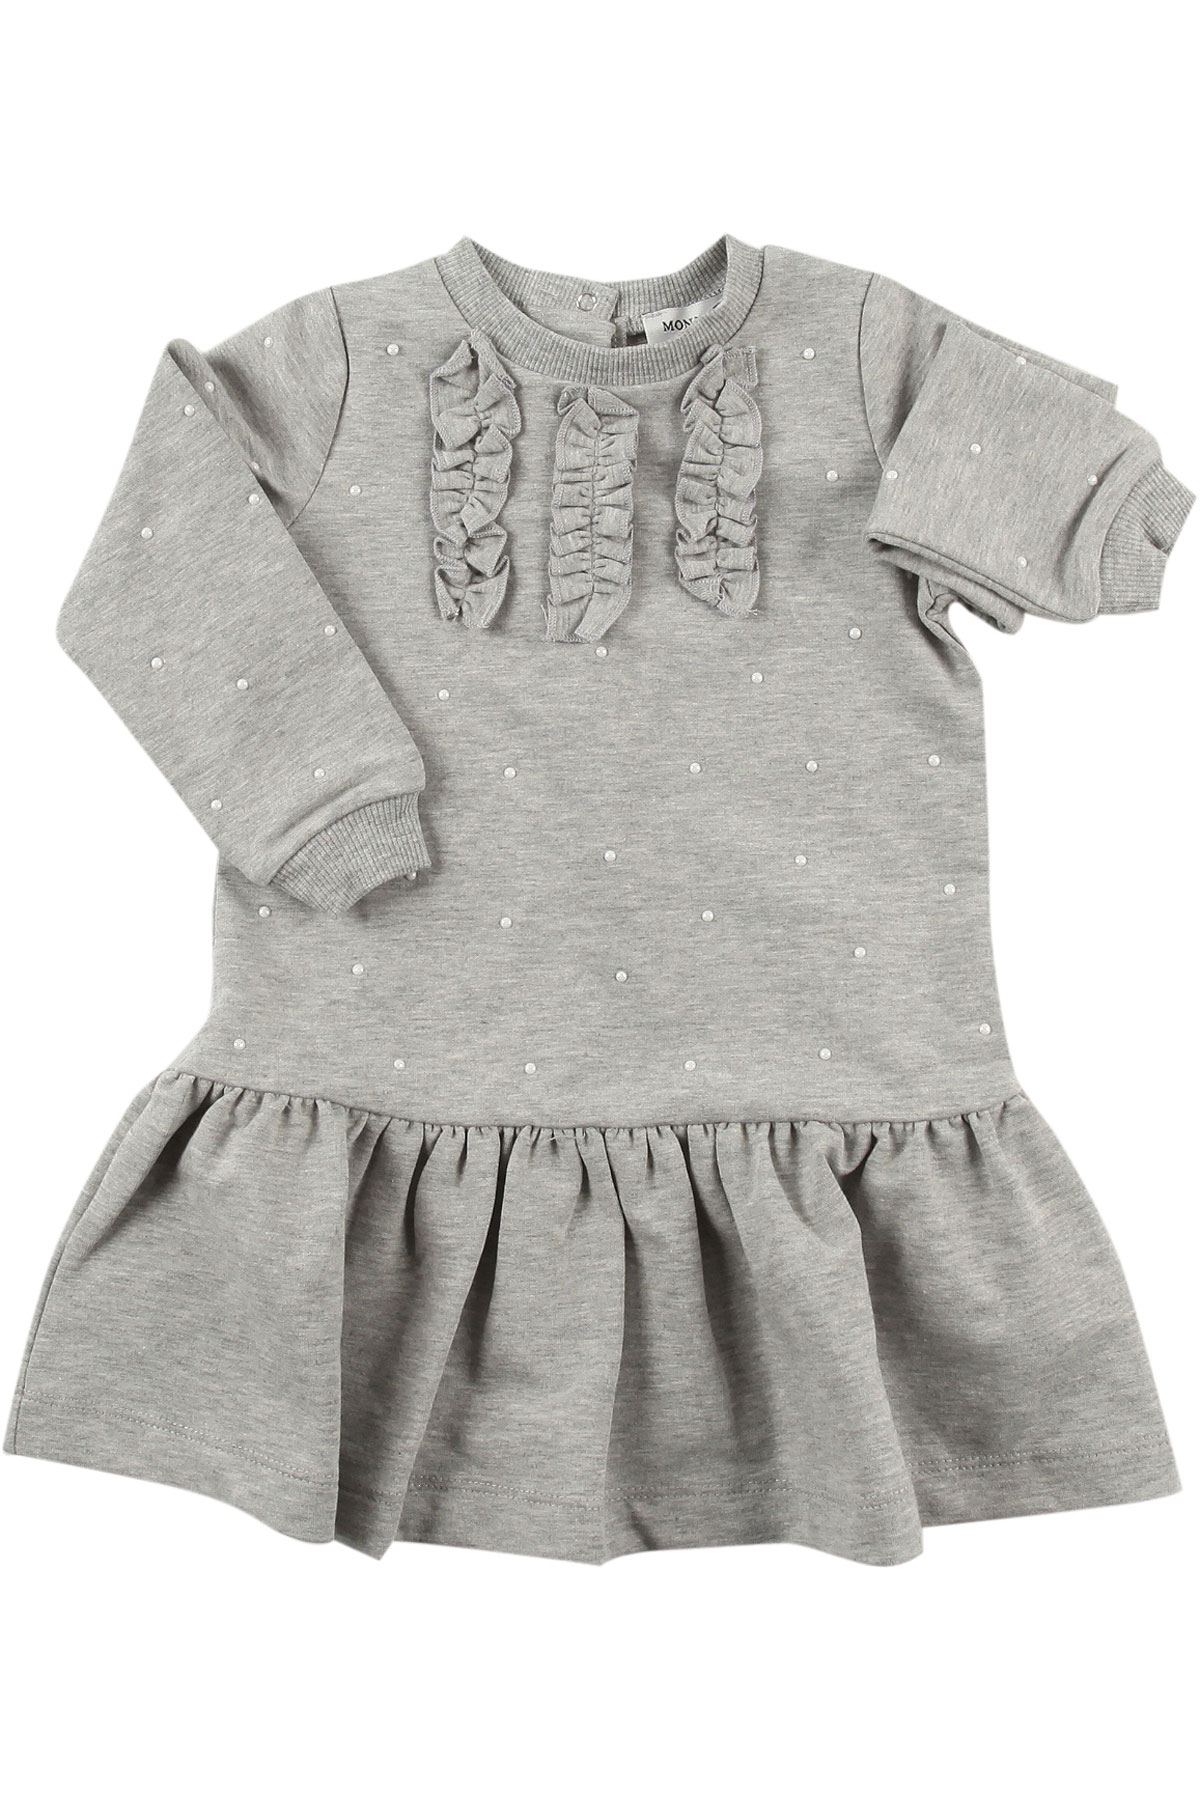 Image of Monnalisa Baby Dress for Girls, Grey, Cotton, 2017, 12M 18M 2Y 3M 3Y 6M 9M